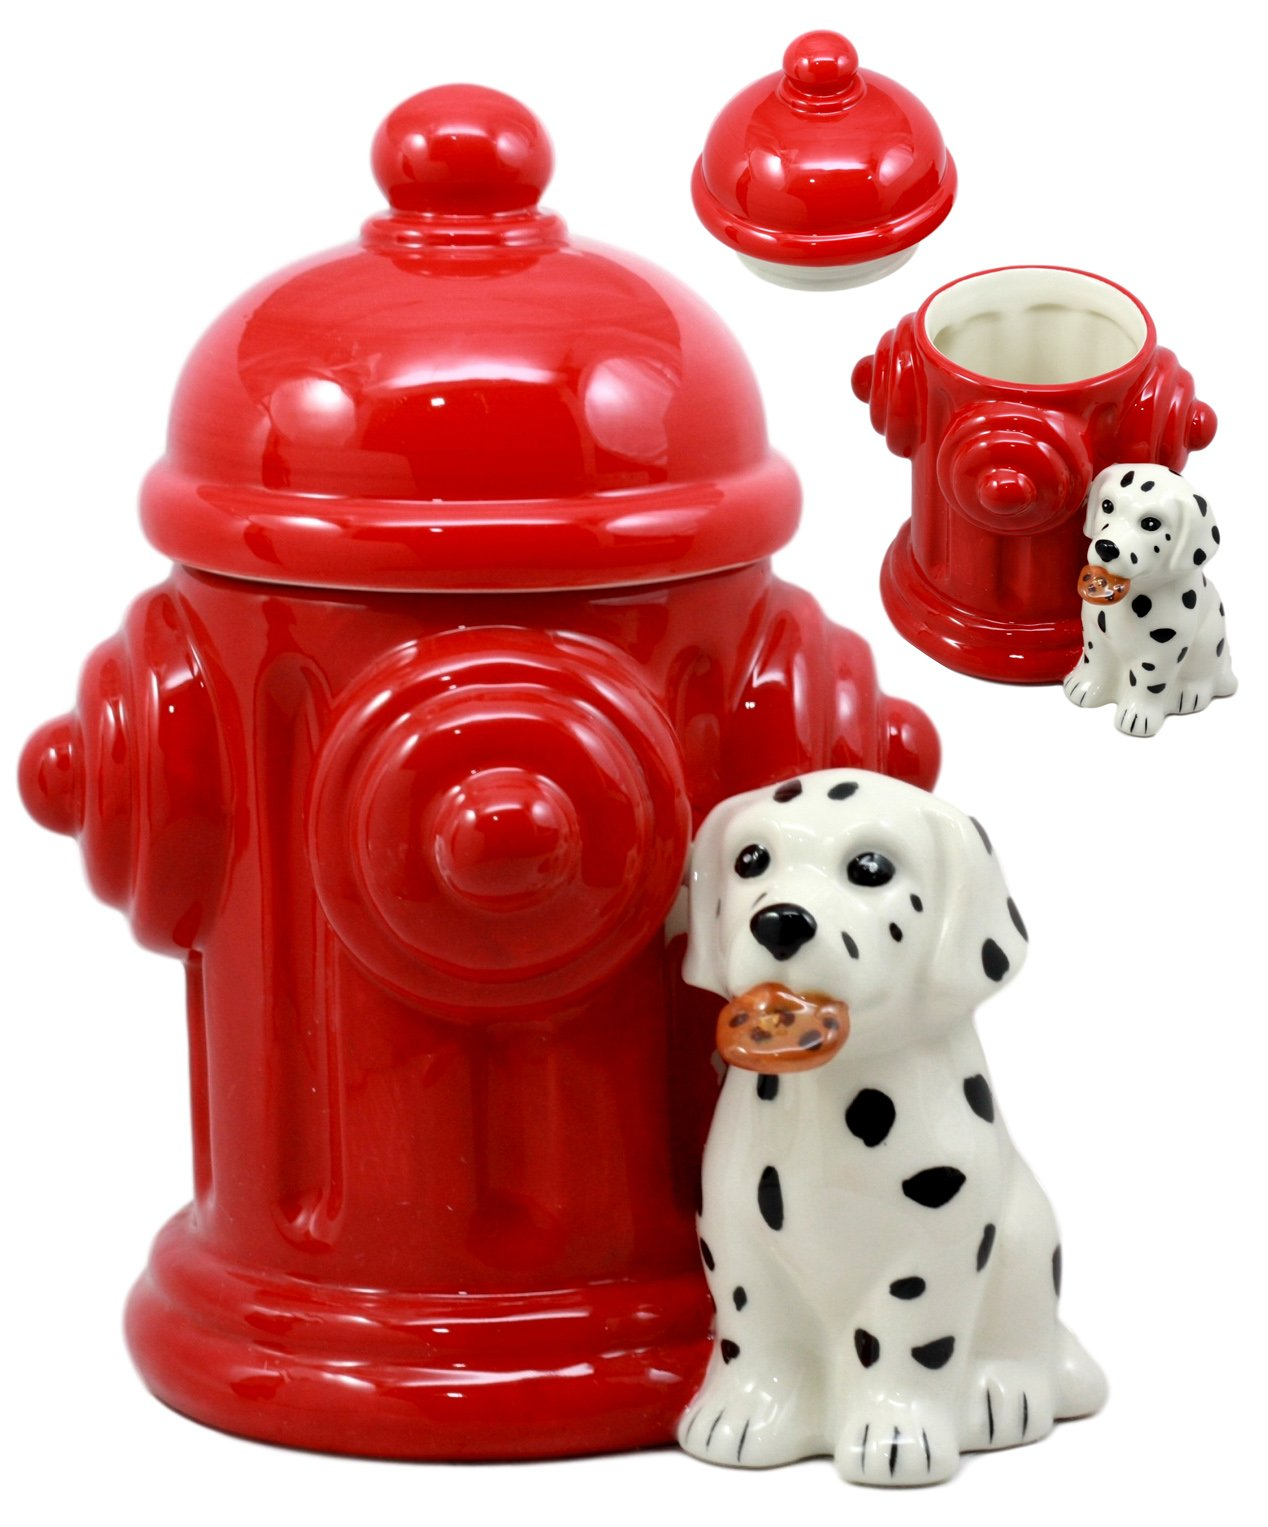 Ebros Ceramic Firehouse Dalmatian Puppy With Fire Hydrant Cookie Jar Decorative Kitchen Accessory Figurine